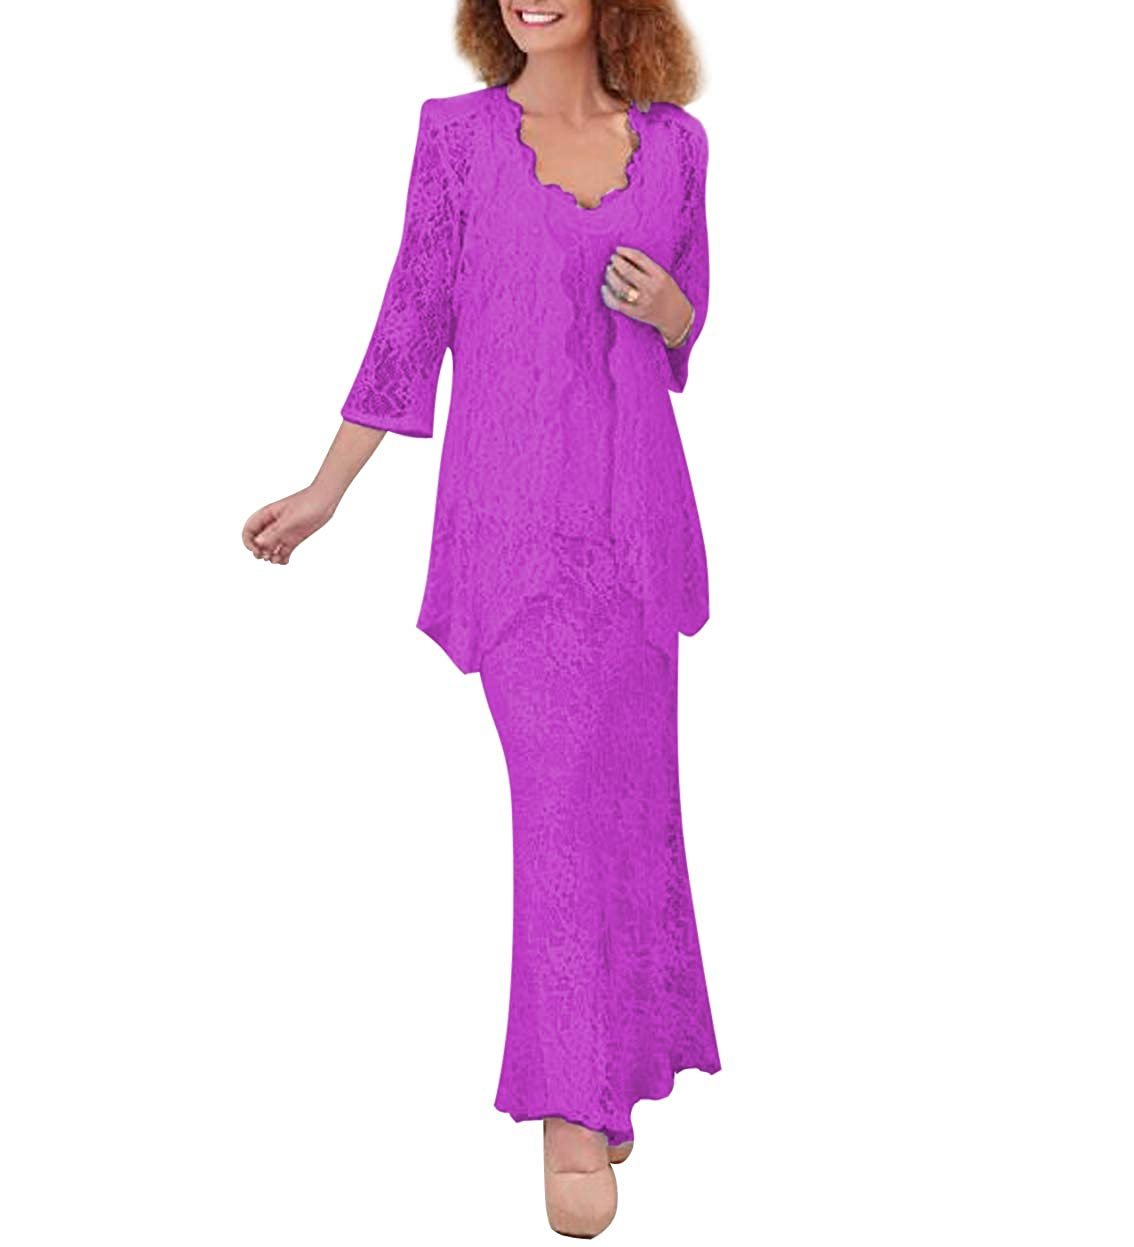 purplec Women's 3 Pieces Lace Mermaid Mother of The Bride Dresses with 3 4 Sleeves Jacket